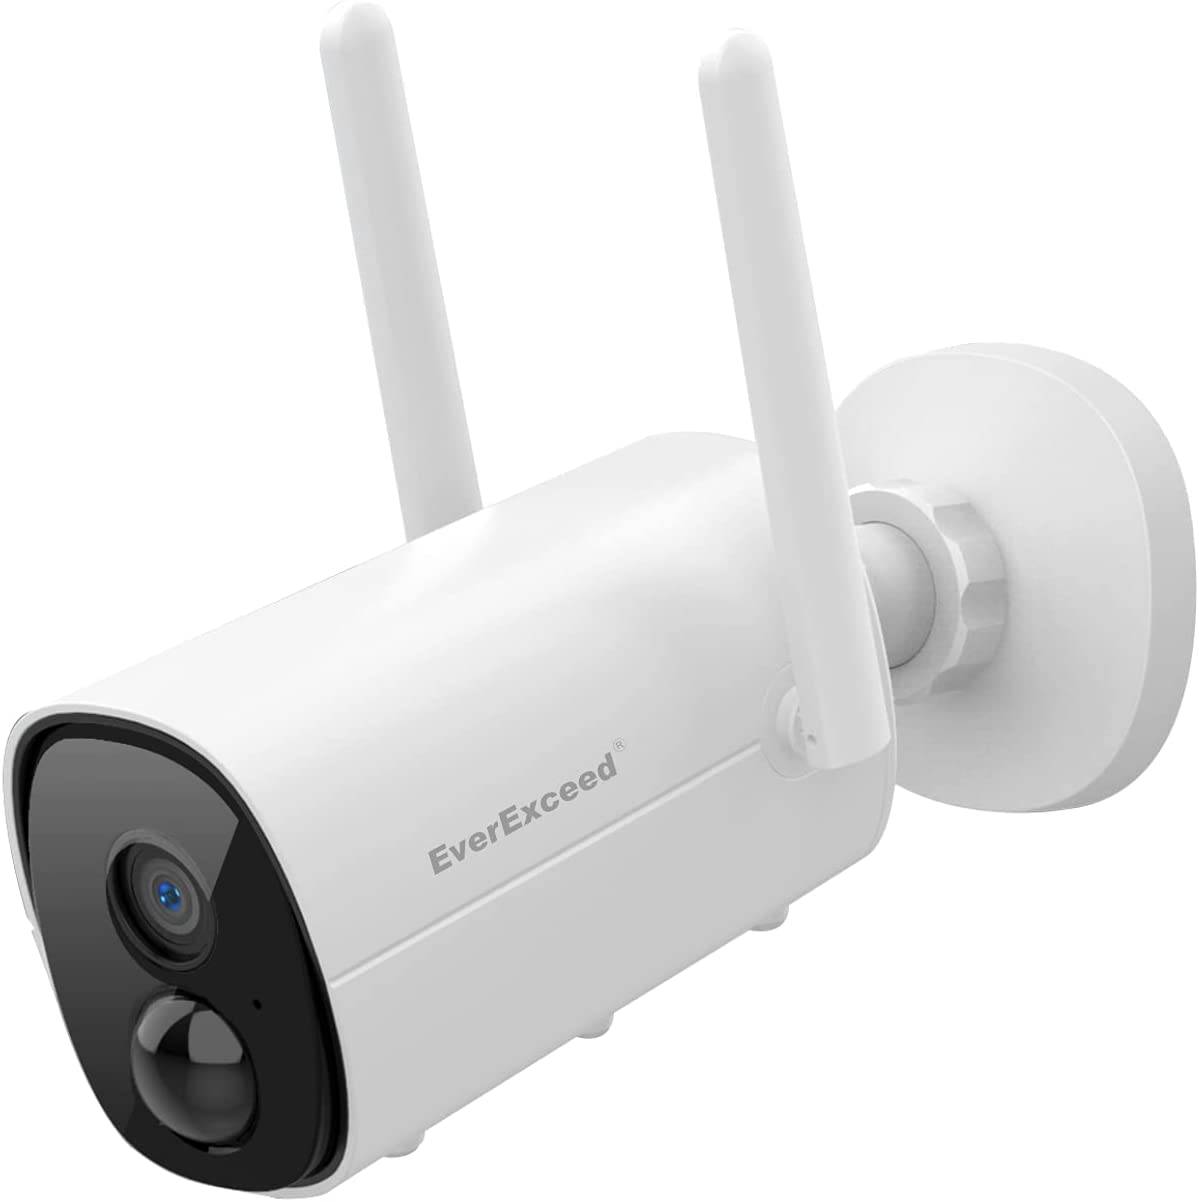 Wireless Outdoor Sale Special Price Security Camera Batter Save money EverExceed Rechargeable